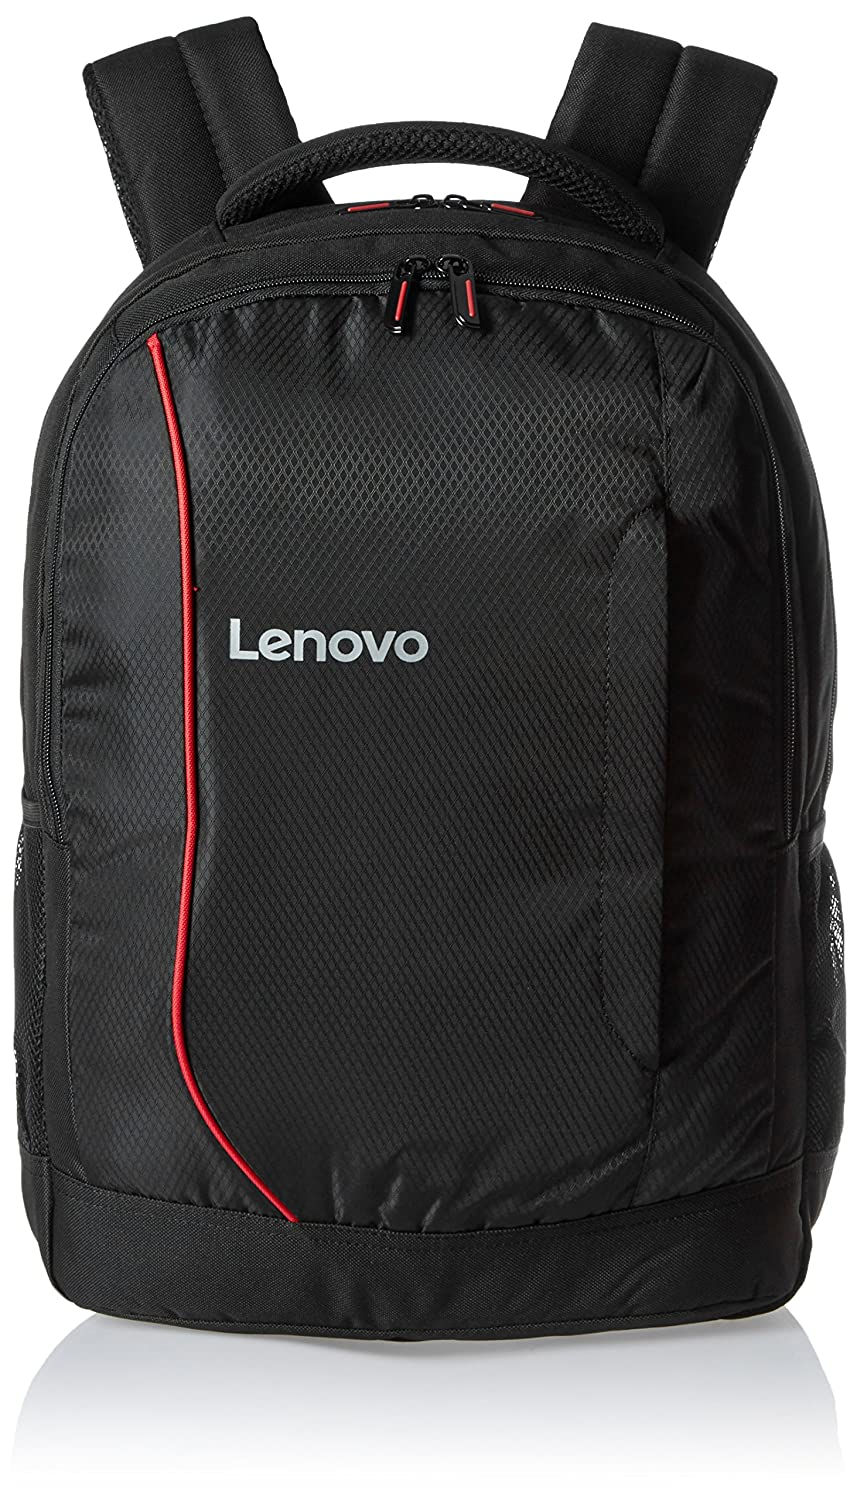 91QCJV42RoL. SL1500  - Top 10 Best Laptop Bags under 1000 in India